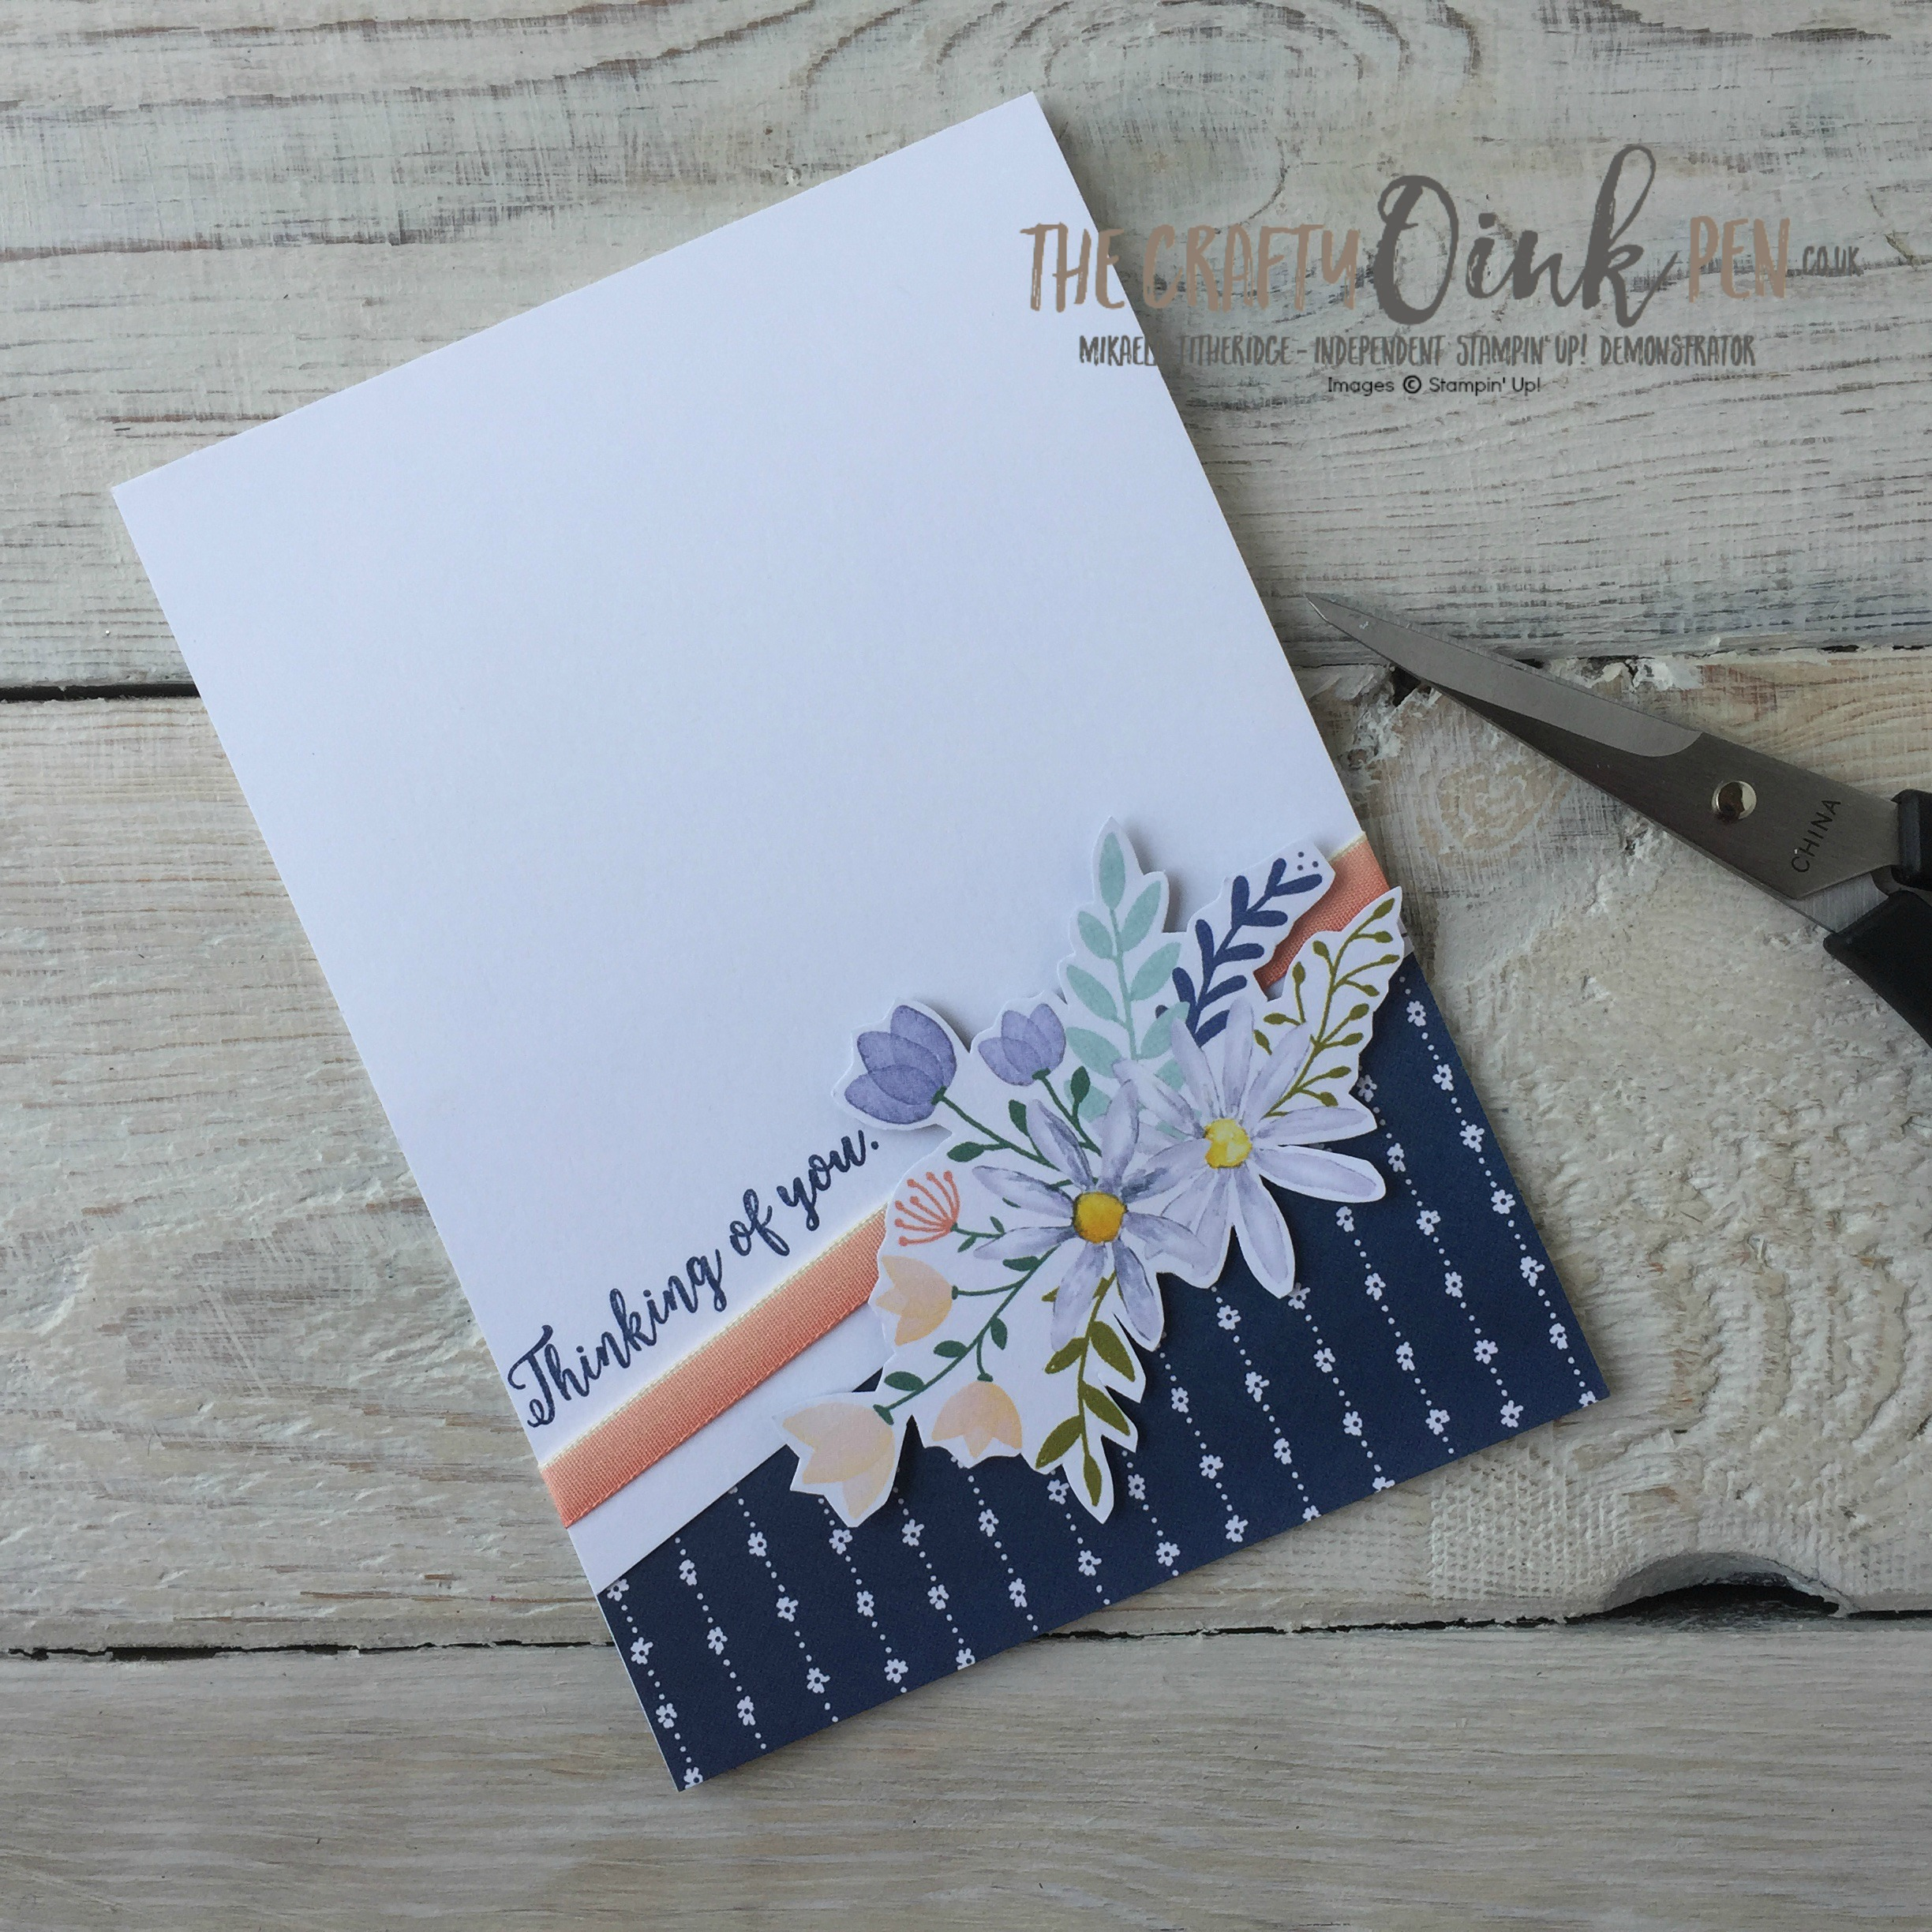 Cut a Delightful Daisy by Mikaela Titheridge, Independent Stampin' Up! Demonstrator, The Crafty oINK Pen